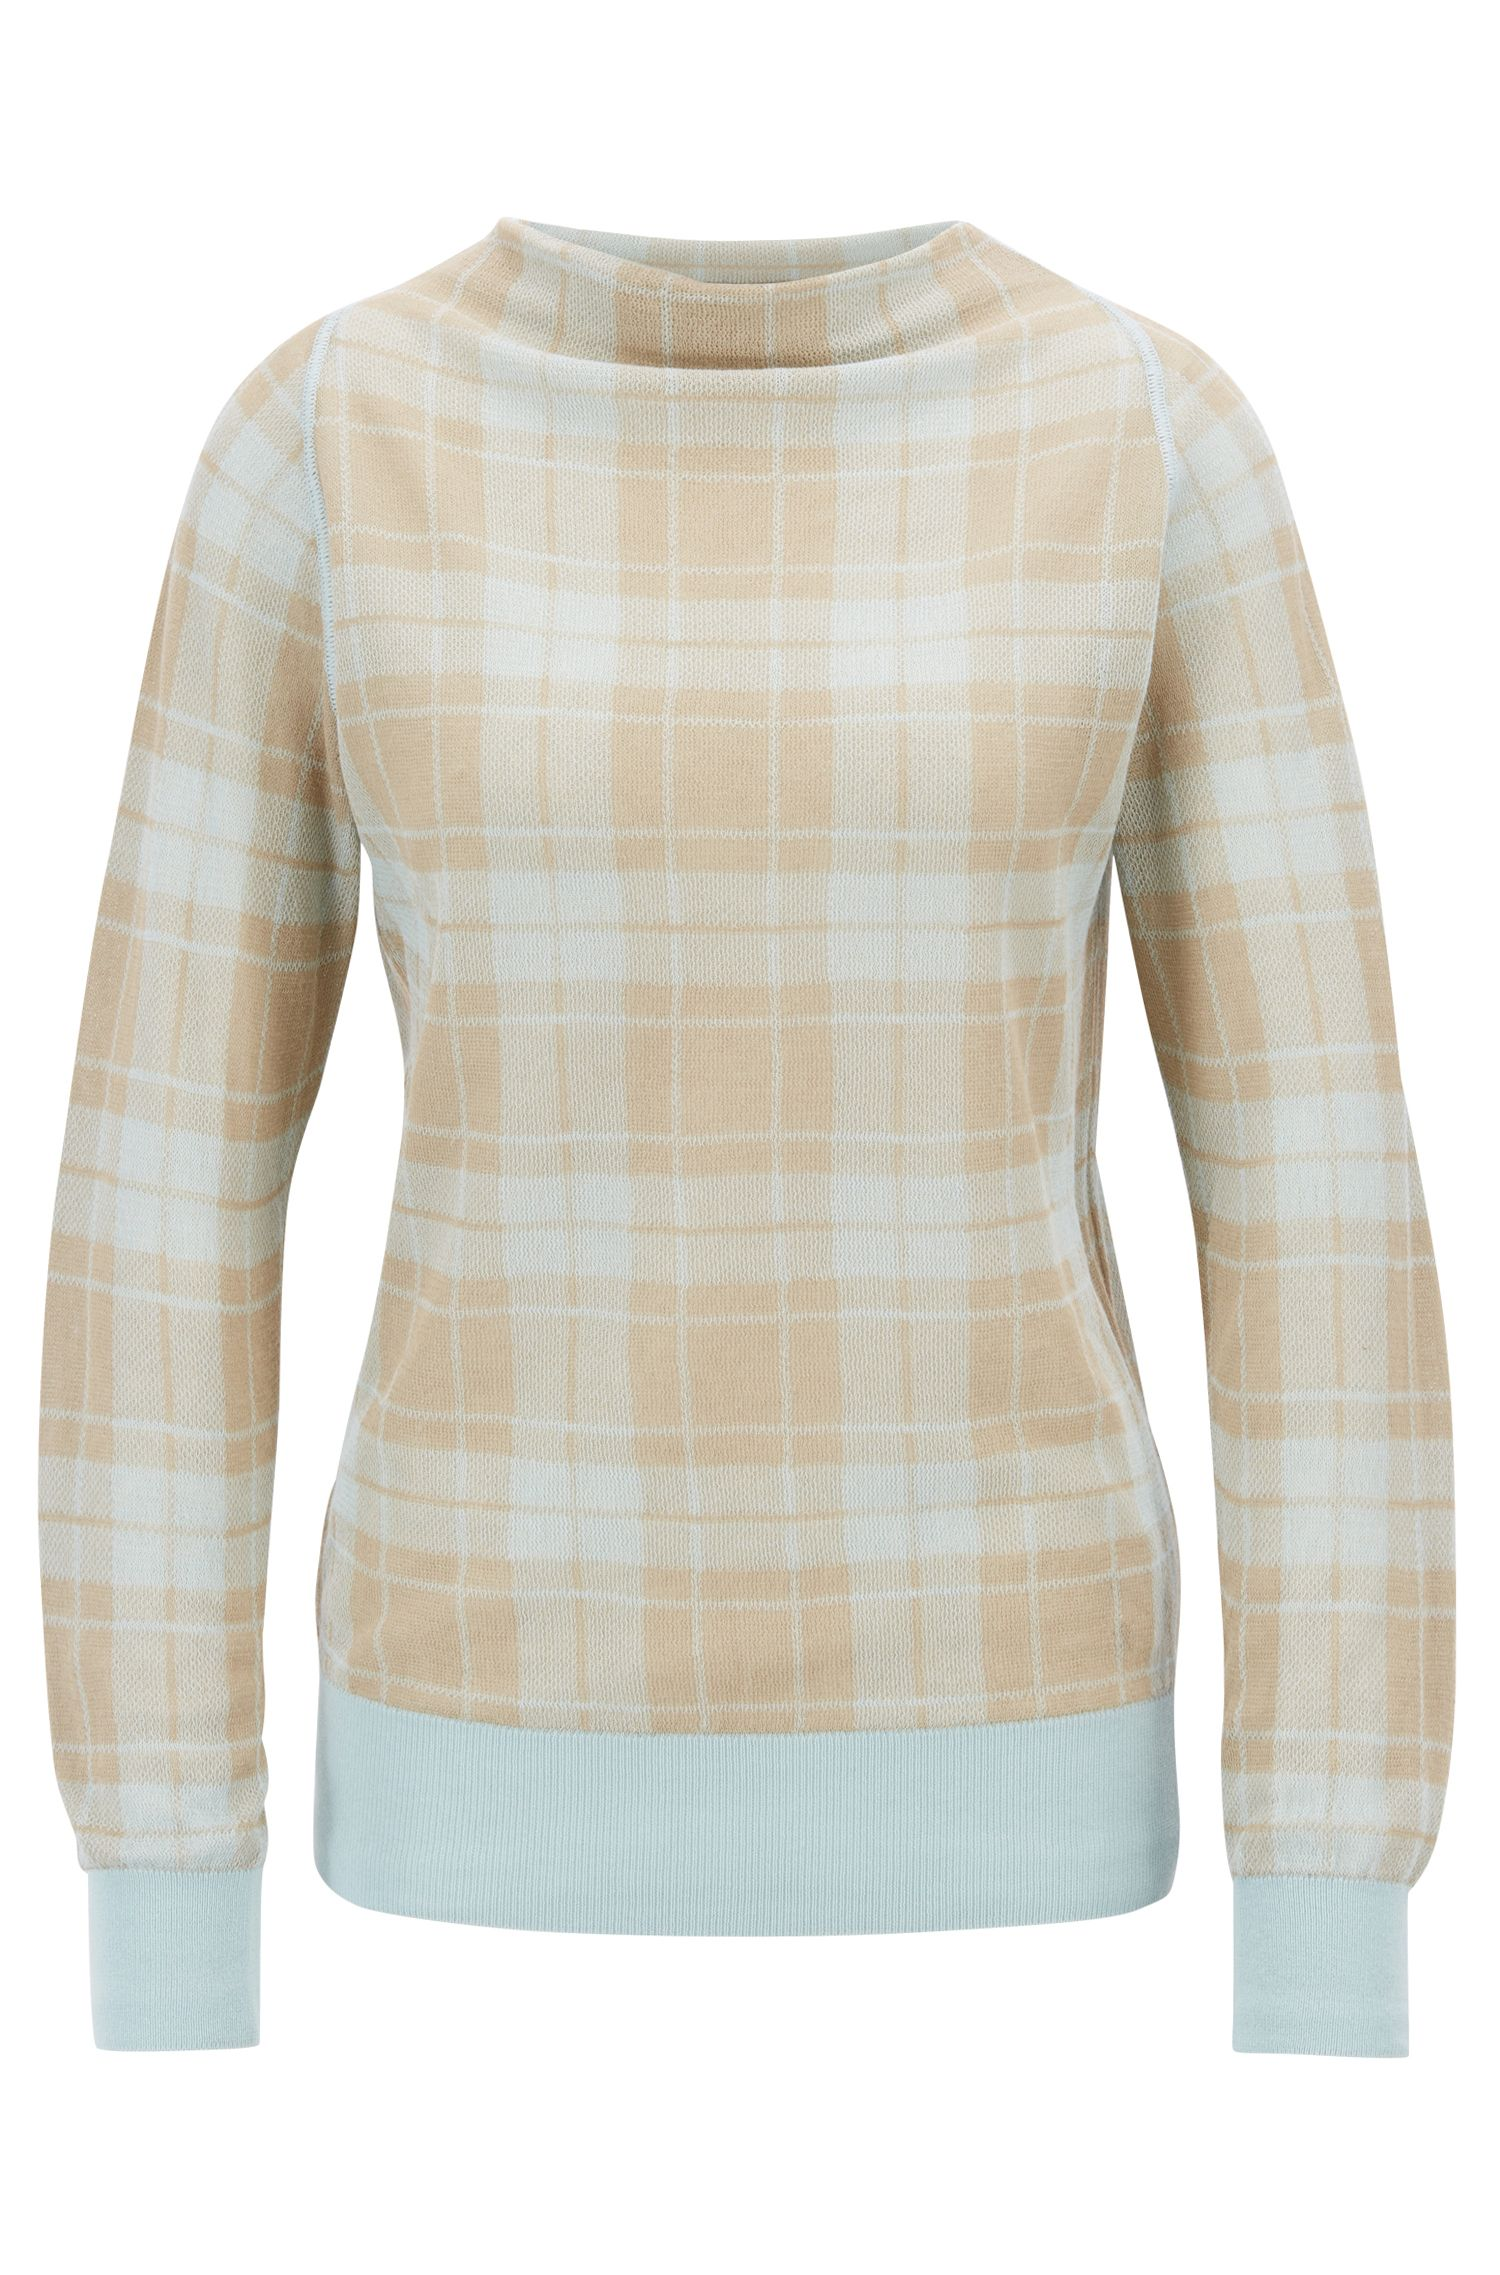 Knitted sweater in a checked cotton blend, Patterned